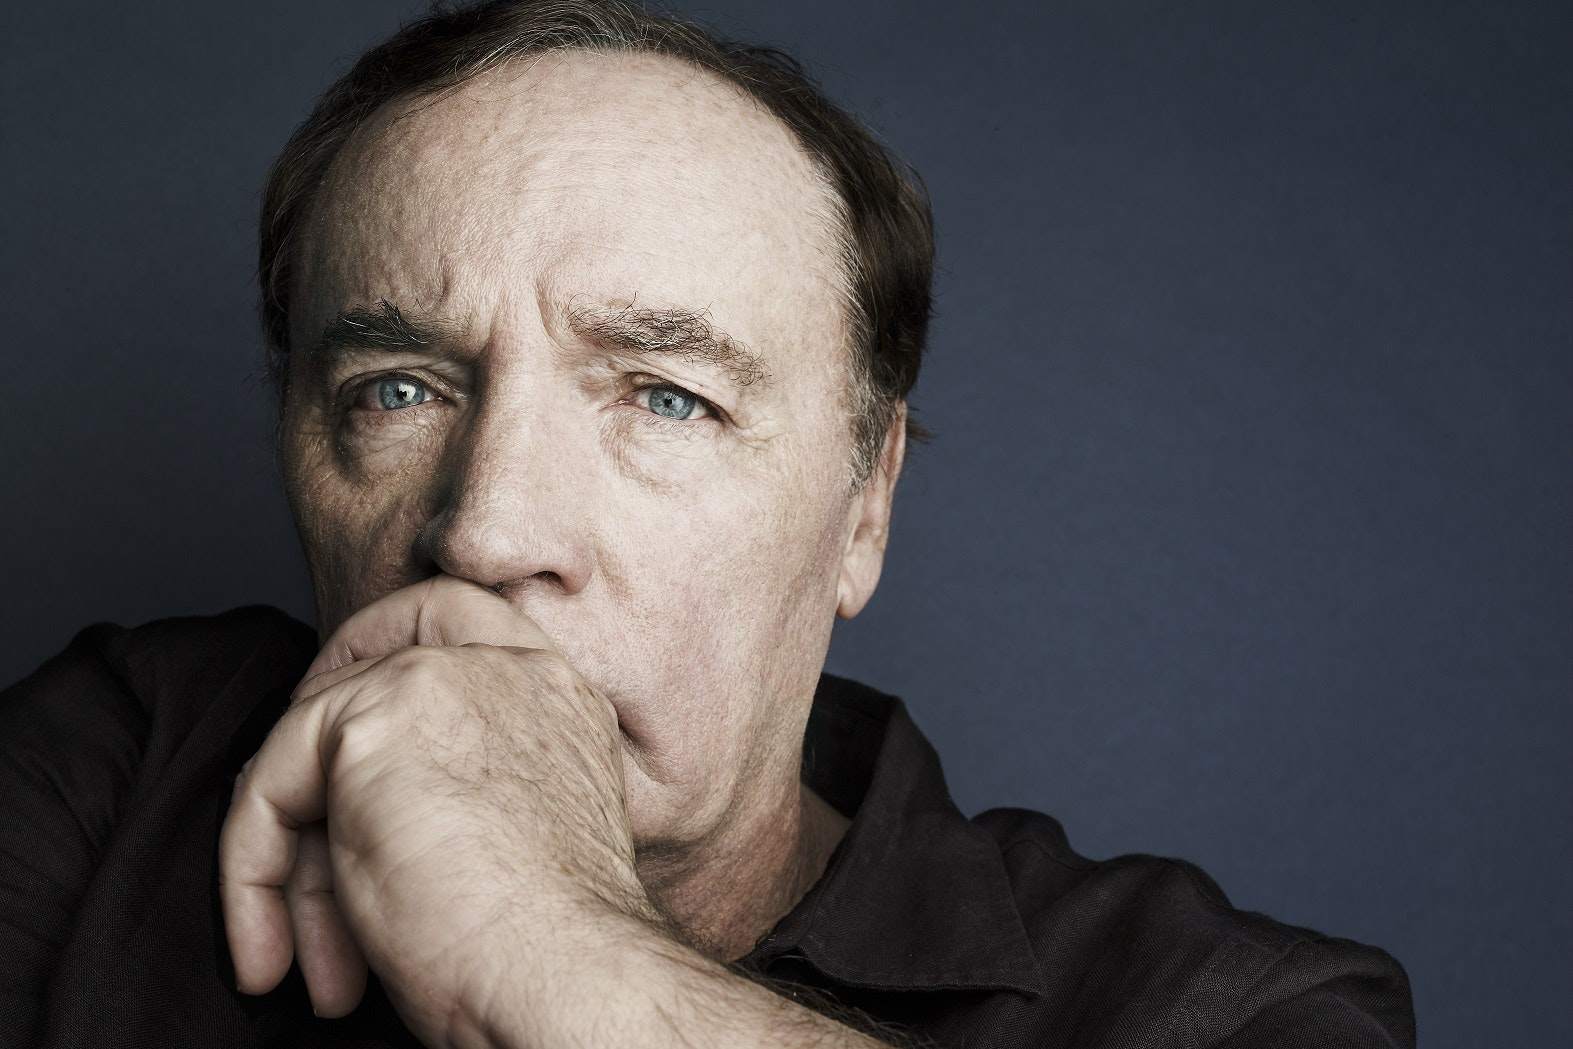 James Patterson will attend the crime writing festival